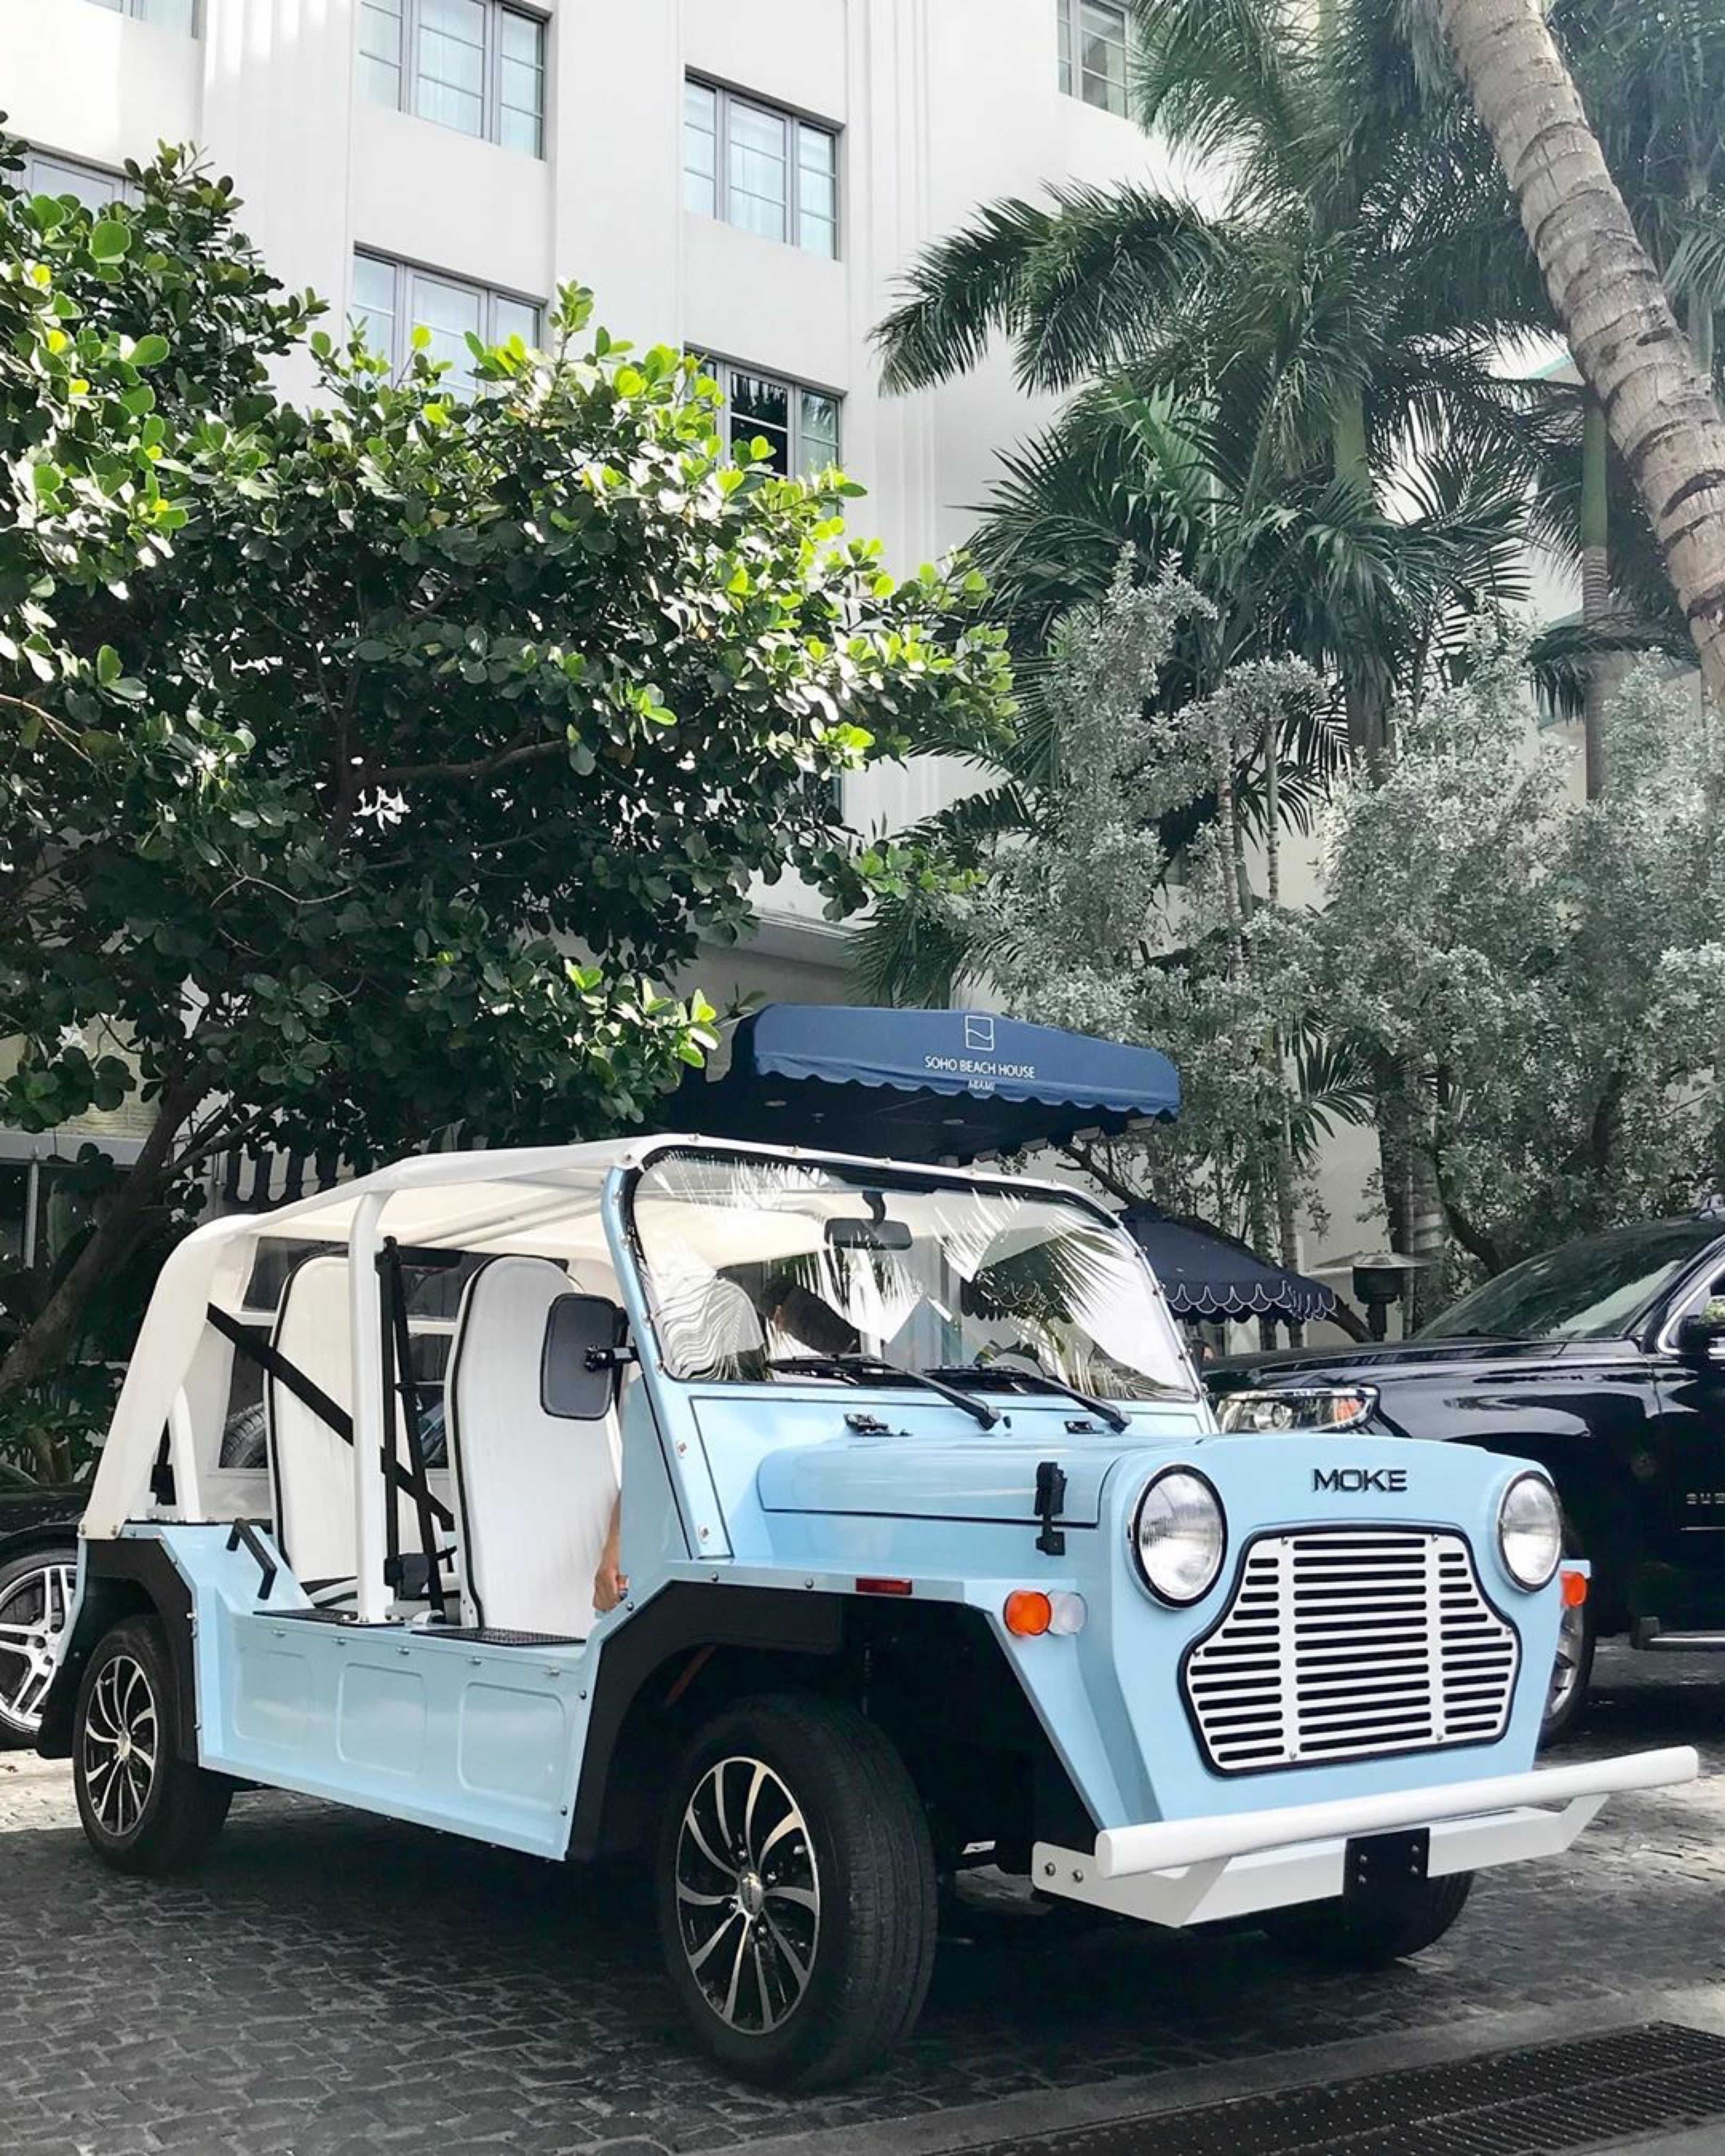 We're ready for a great week! 🚙💨   #MokeAmerica #ElectricCar #MondayMotivation #WeDeliver #Moke #BabyBlue